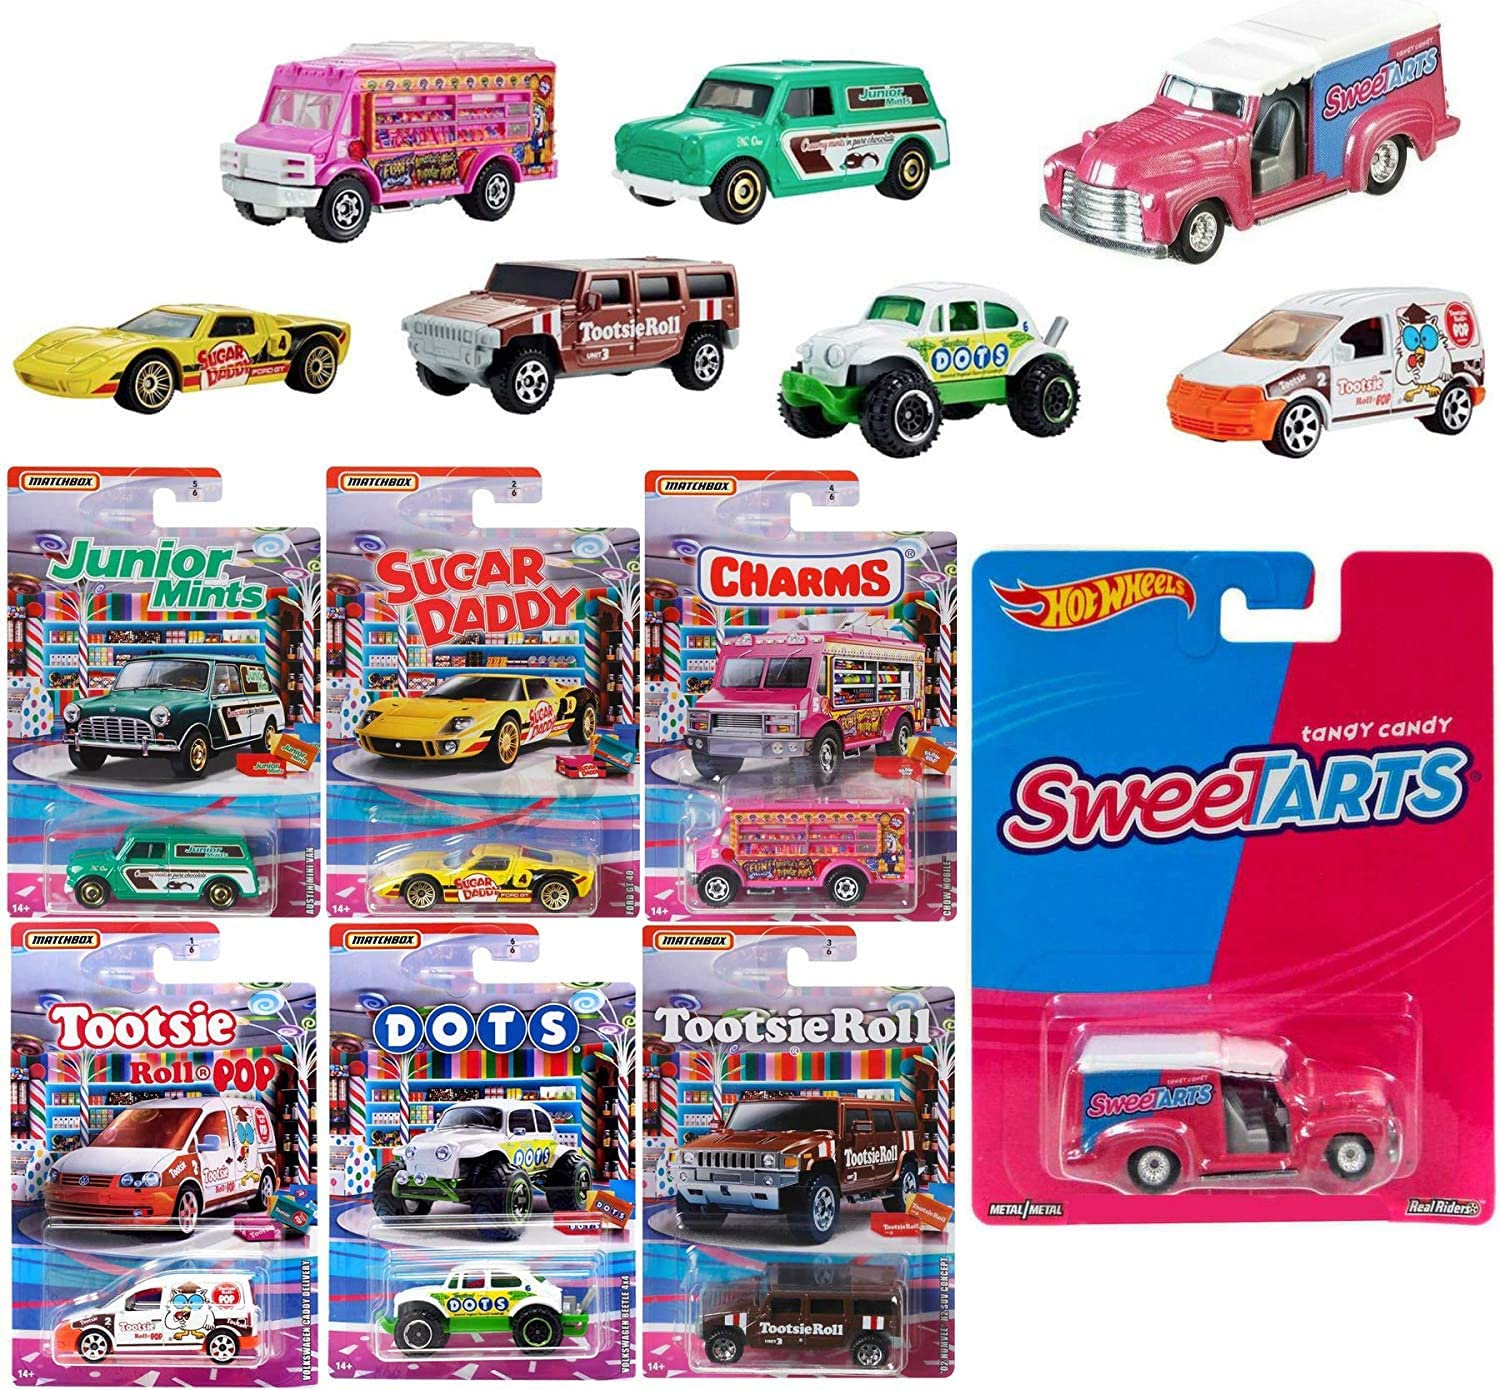 Sweet Bites Racers Trucks and Cars Die-Cast Delivery Tarts pop Culture Bundled with Quick + Matchbox Volkswagen Dots Bug / Charms / Tootsie Roll SUV / Sugar Daddy Ford GT / Junior Mints Mini 7 Items